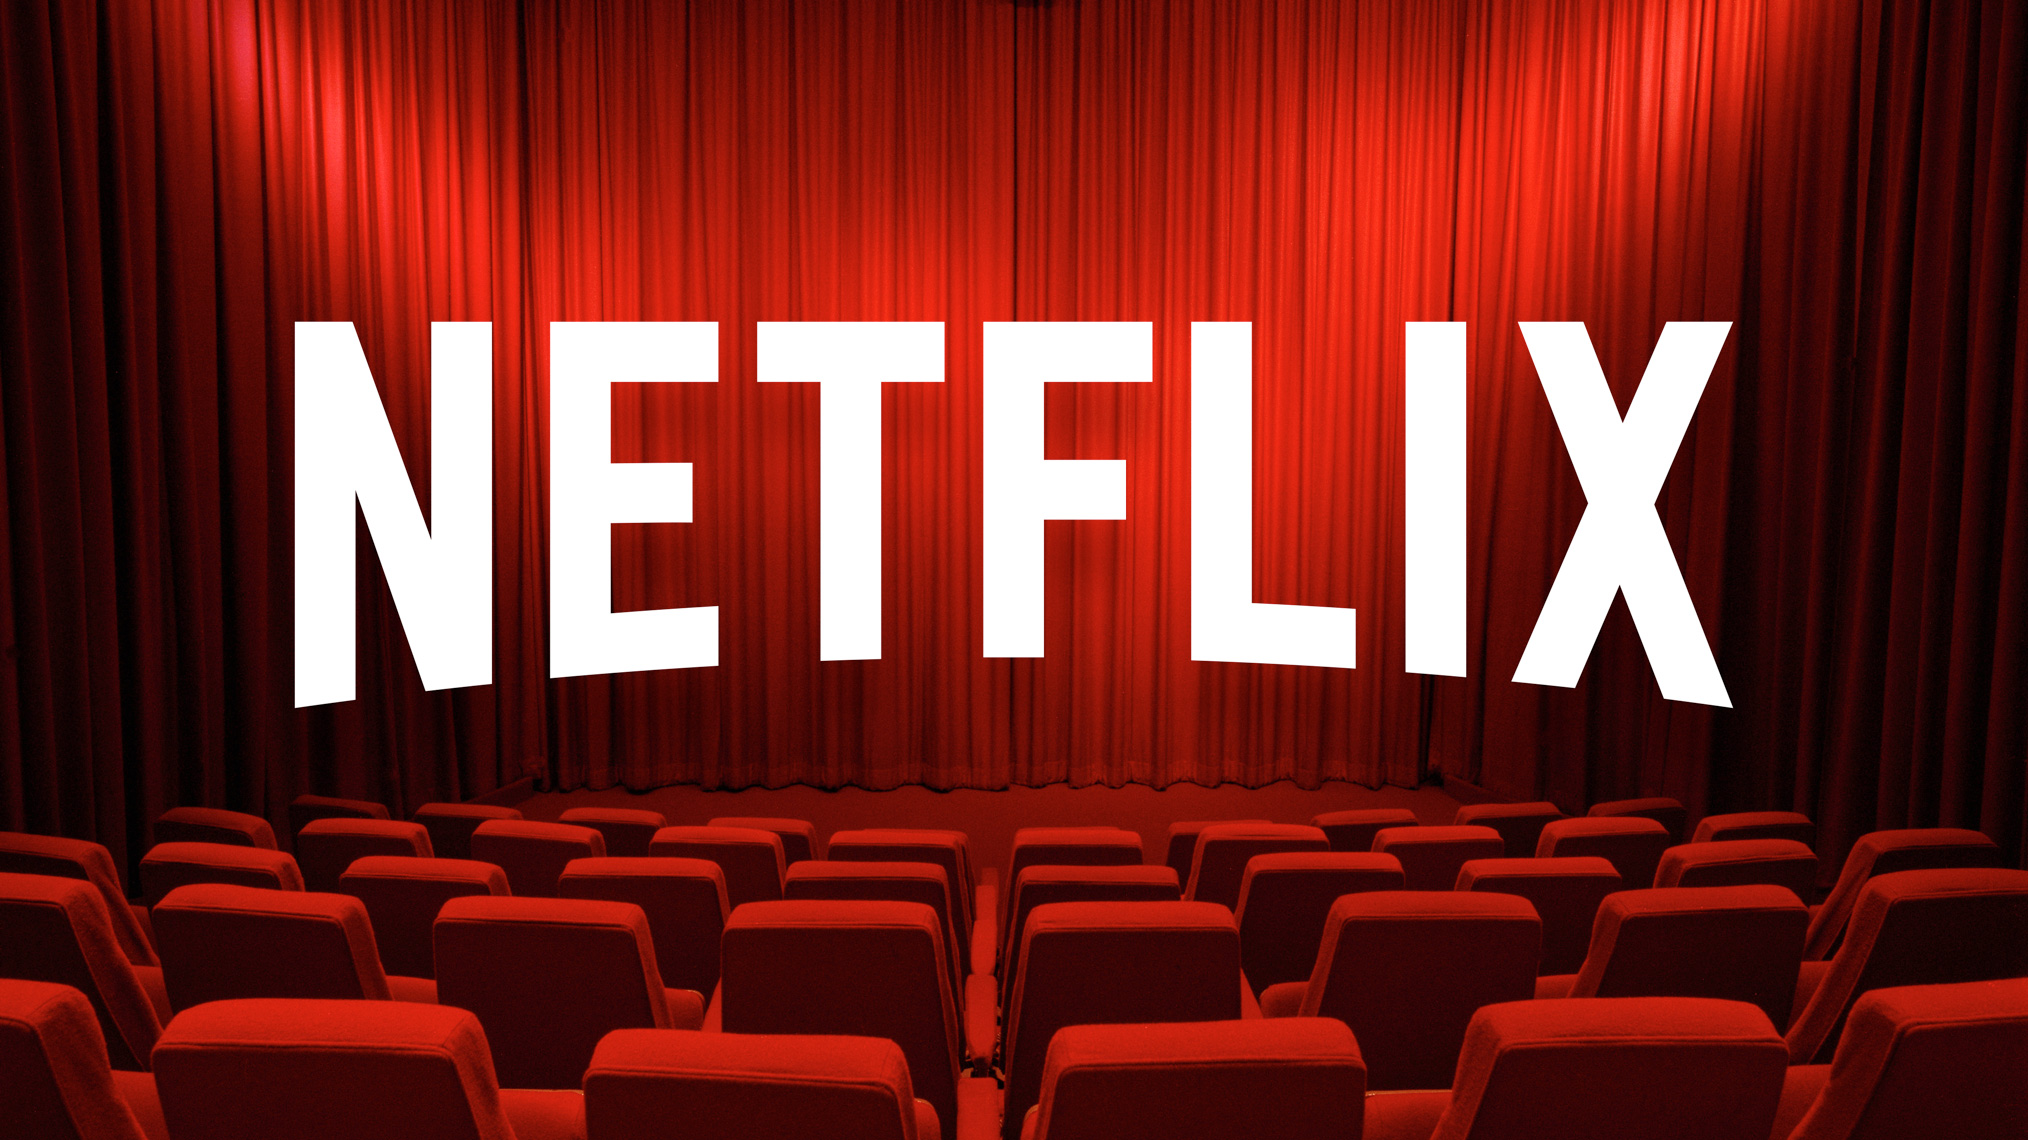 Netflix signs deal with theater chain to put original films on the big  screen | TechCrunch